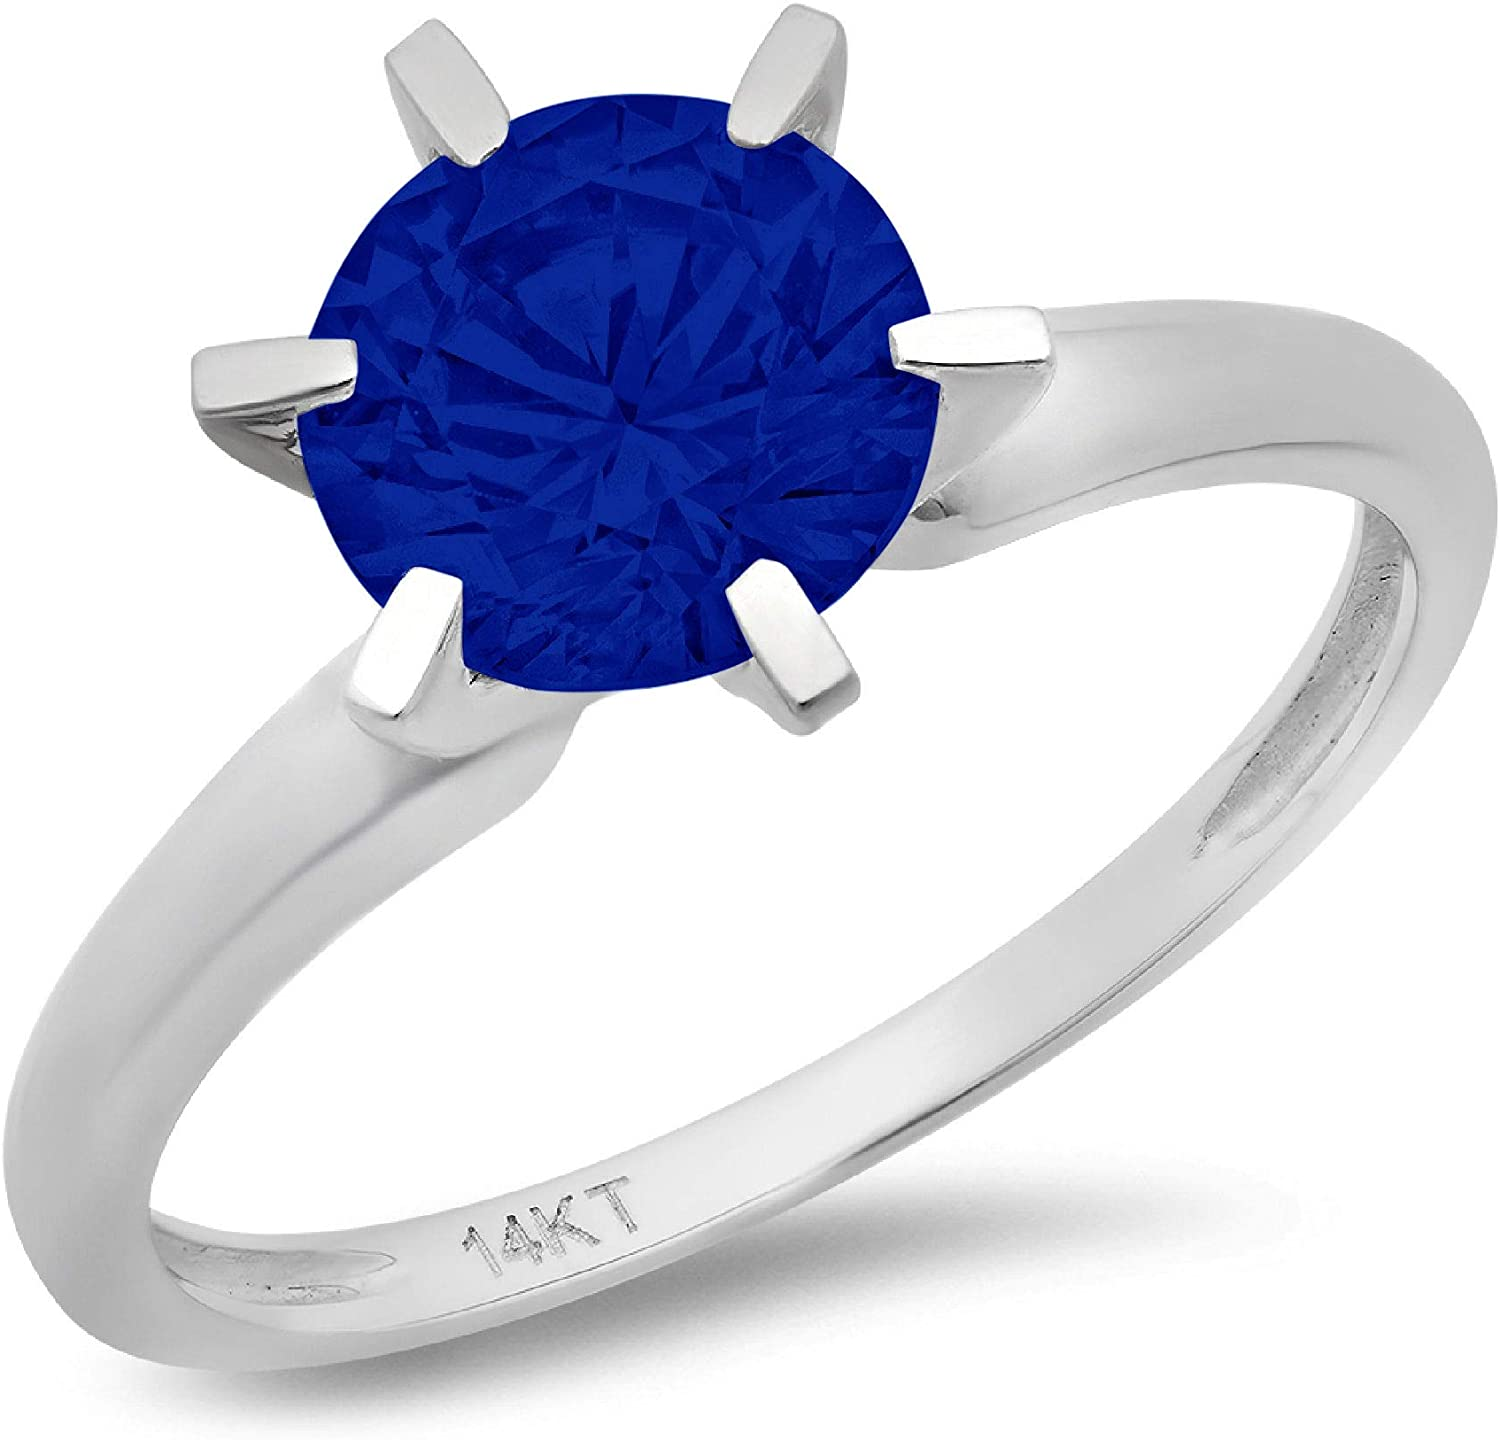 2.0 ct Brilliant Round Cut Solitaire Flawless Simulated Blue Sapphire Ideal 6-Prong Engagement Wedding Bridal Promise Anniversary Designer Ring in Solid 14k White Gold for Women